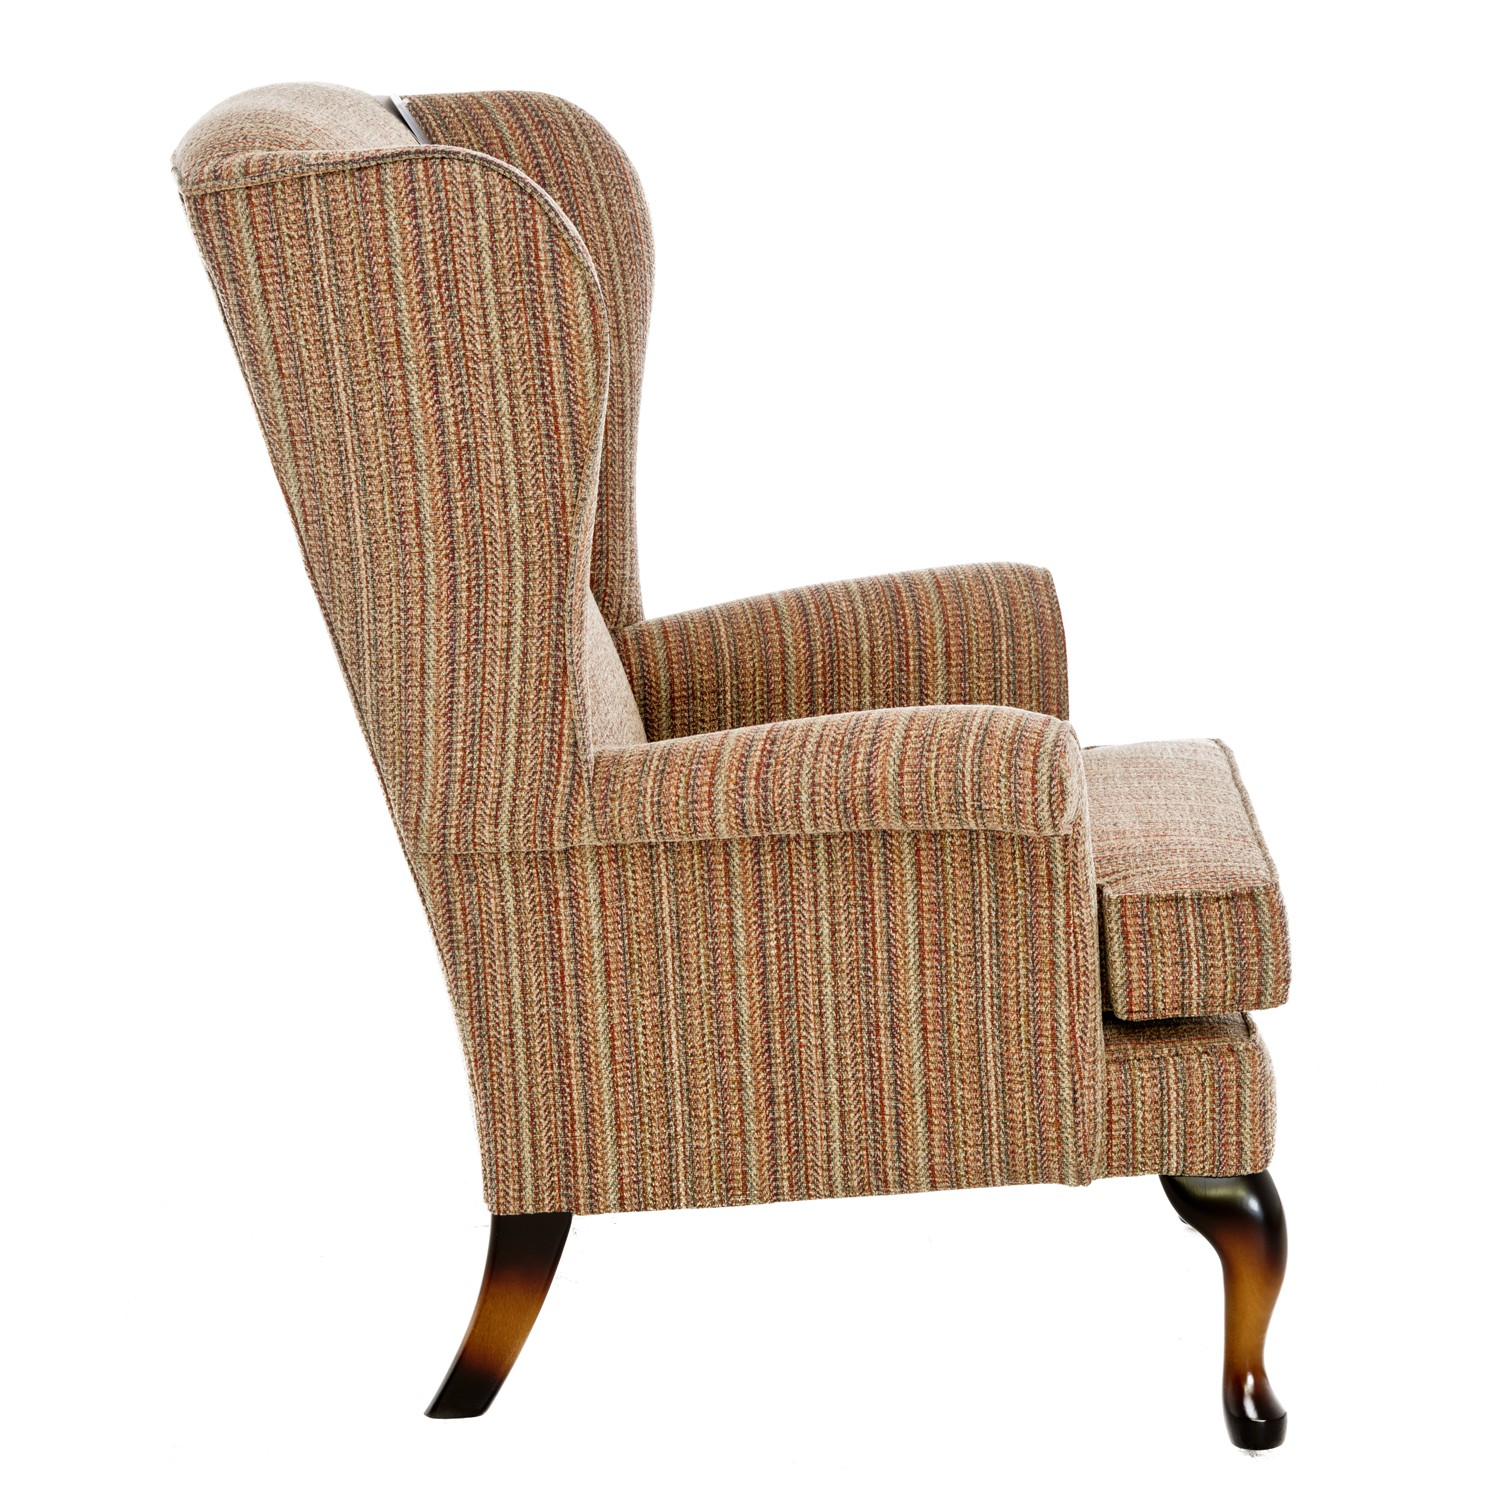 parker knoll dining chairs second hand louis chair room and board penshurst wing leekes